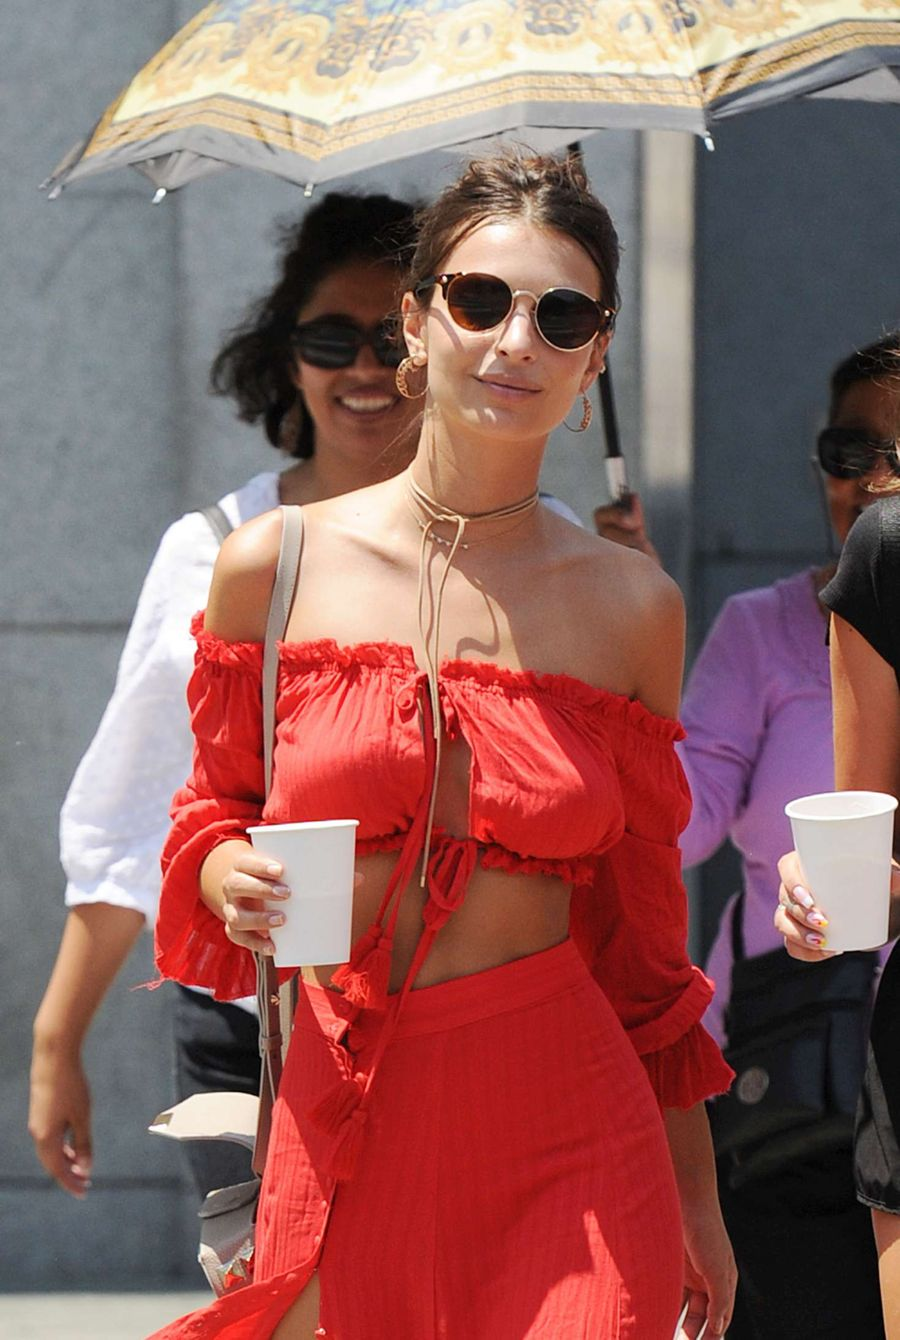 Emily Ratajkowski in Red Dress out in LA